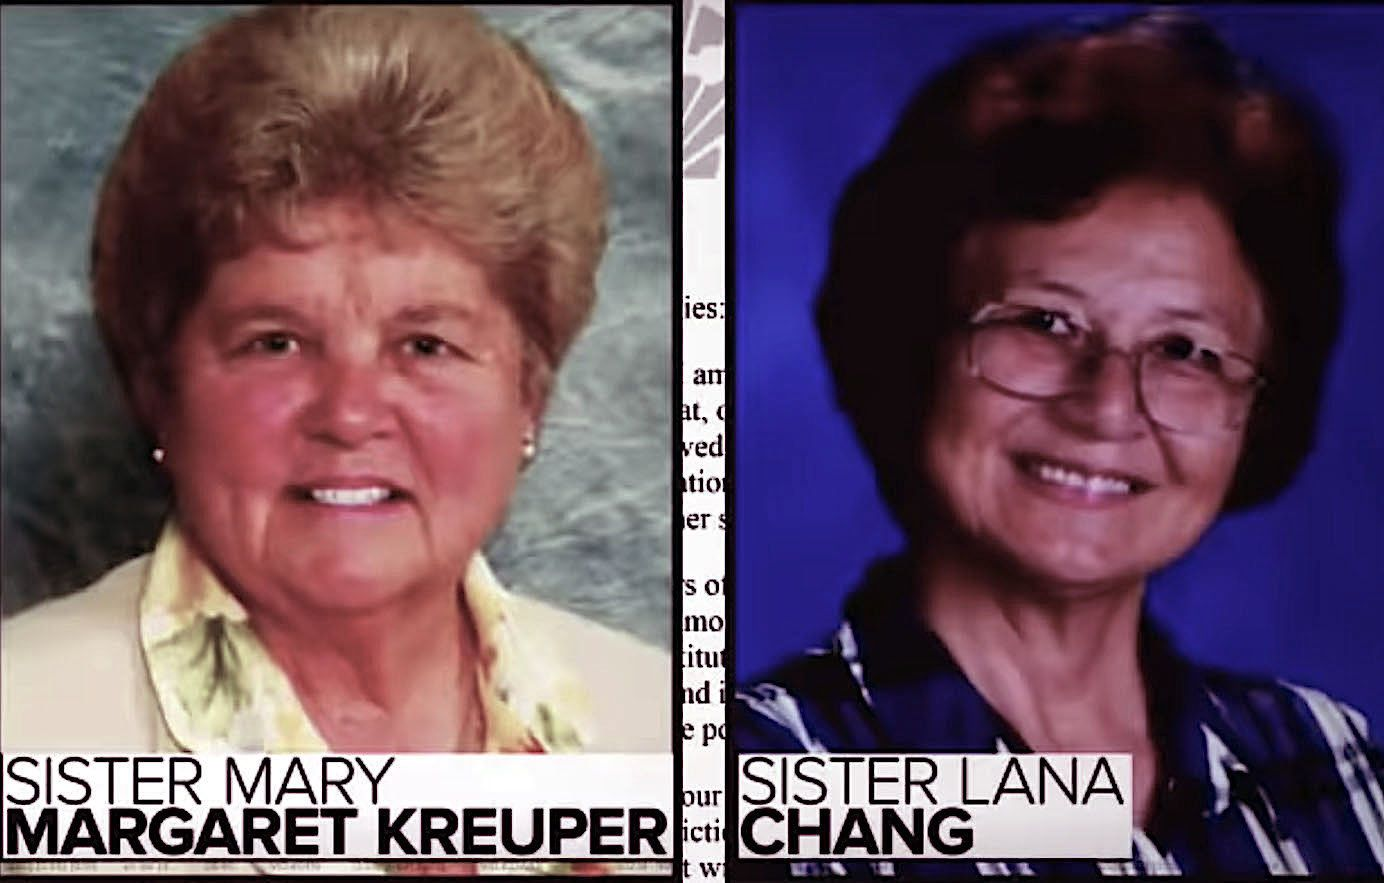 Two nuns, Sister Mary Margaret Kreuper and Sister Ana Chang, are accused of taking money from a Catholic school in California.